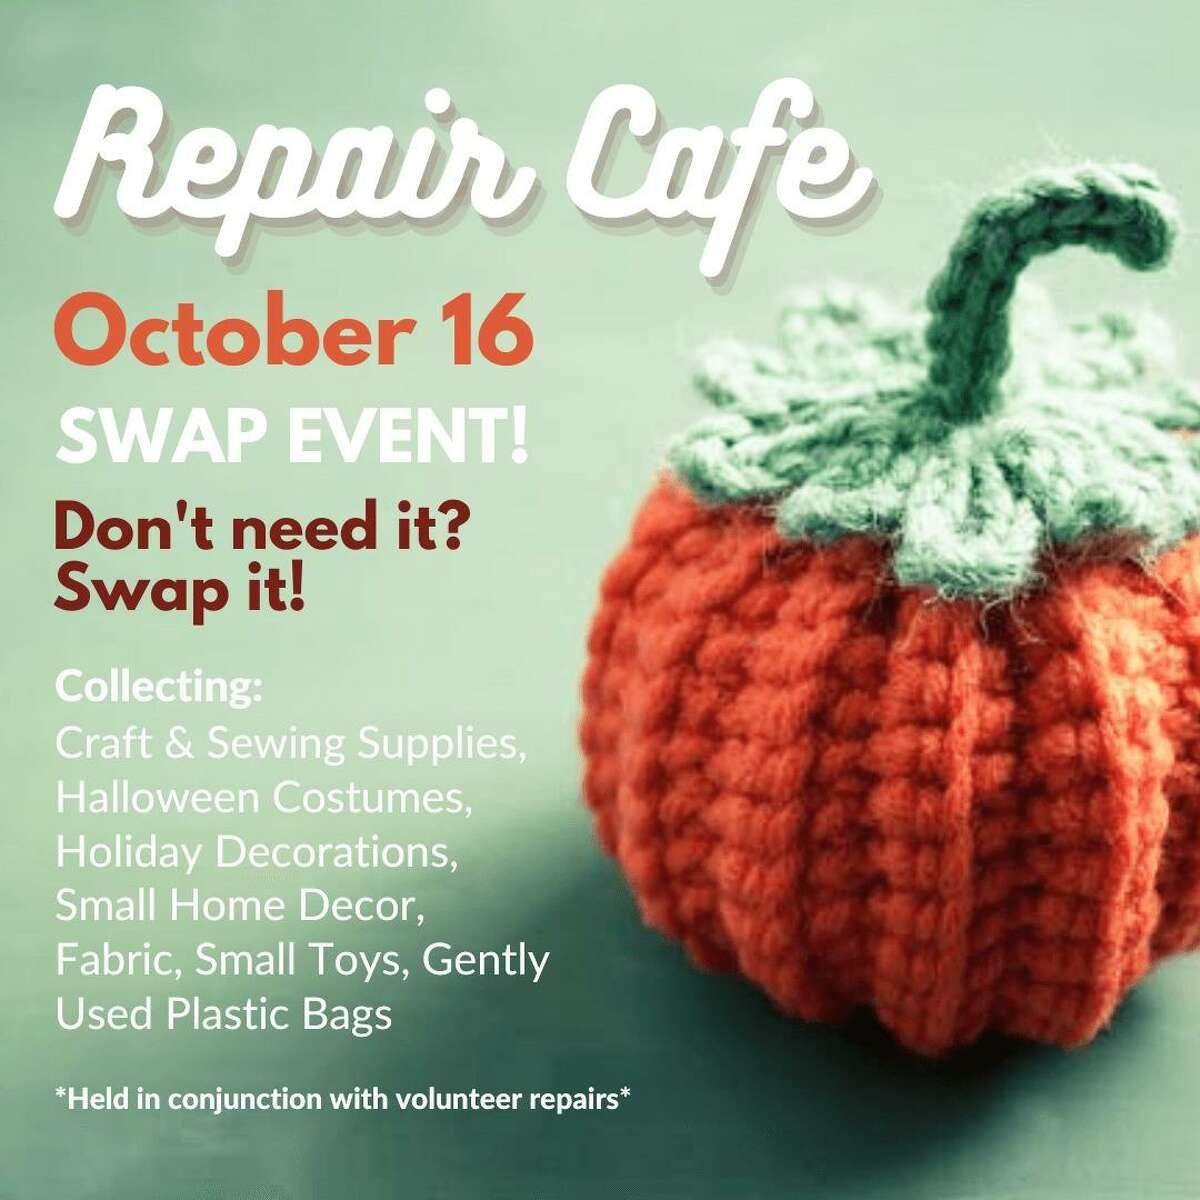 The Rockfall Foundation, in cooperation with city of Middletown Recycling and Public Works departments, as well as the RiverCOG, will be hosting a repair café Oct. 16 at the deKoven House Community Center in Middetown. A swap event will also be held that day.